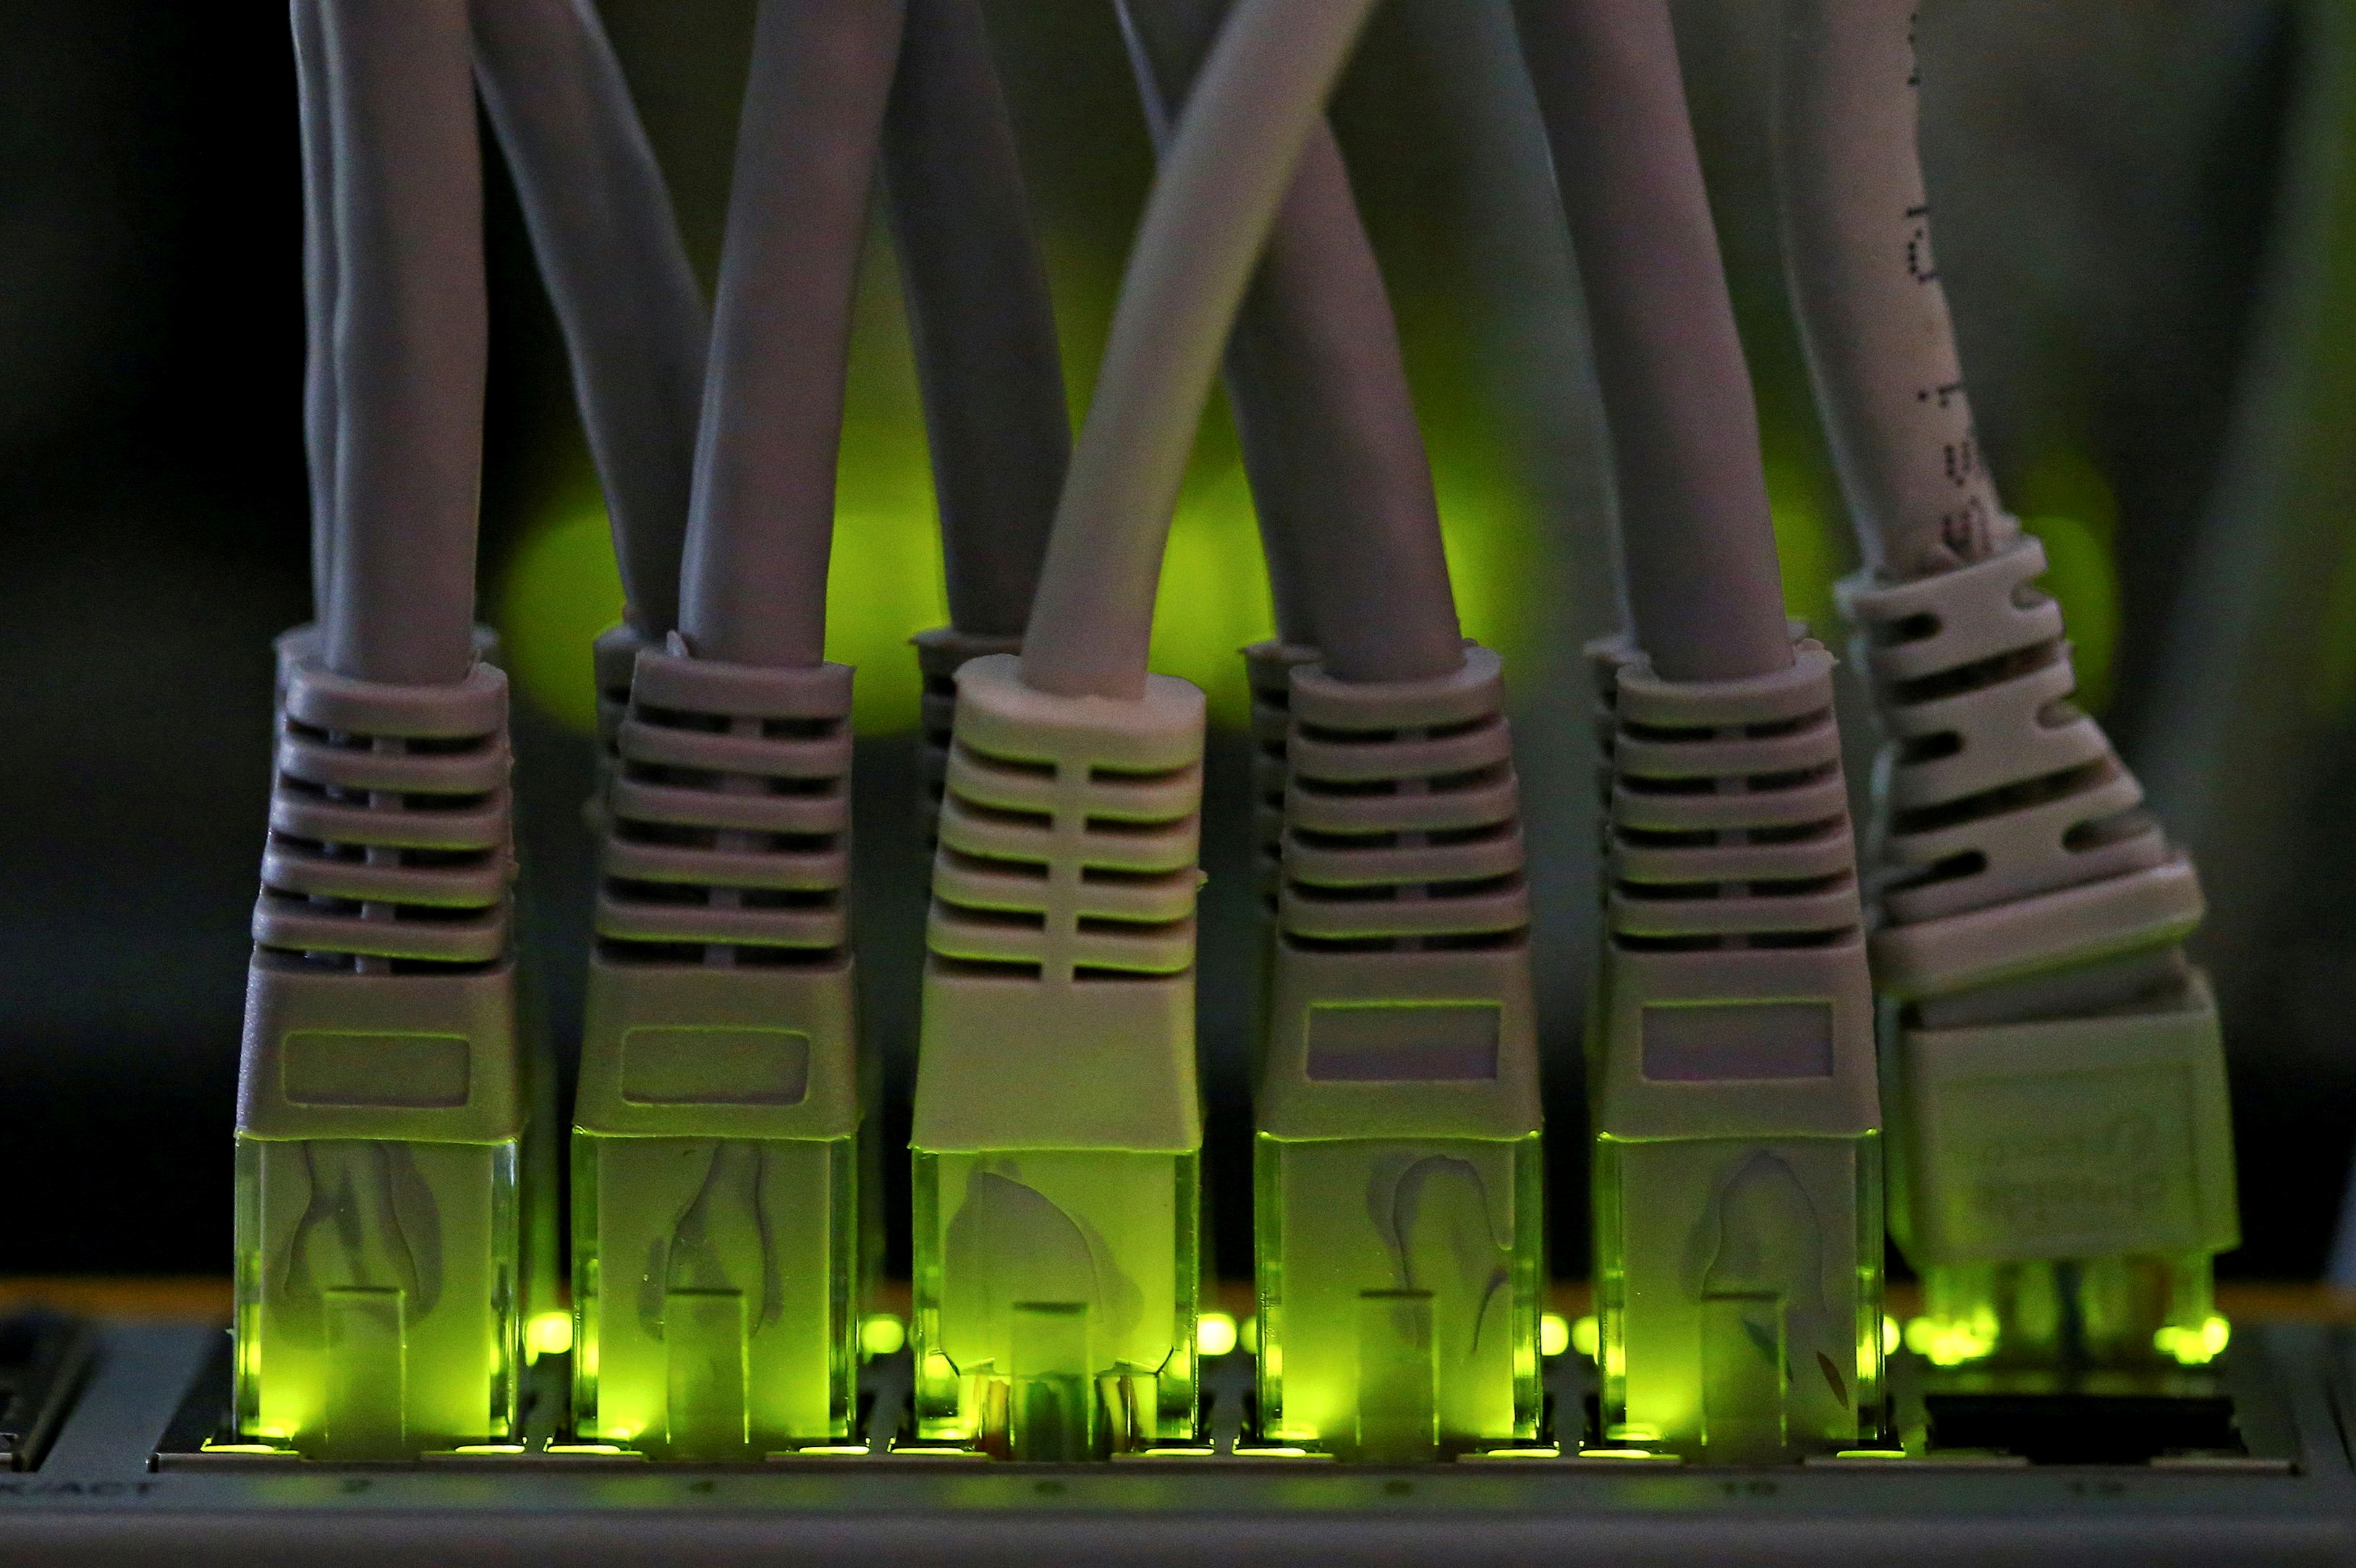 LAN network cables plugged into a Bitcoin mining computer server are pictured in Bitminer Factory in Florence, Italy, April 6, 2018. REUTERS/Alessandro Bianchi/File Photo/File Photo